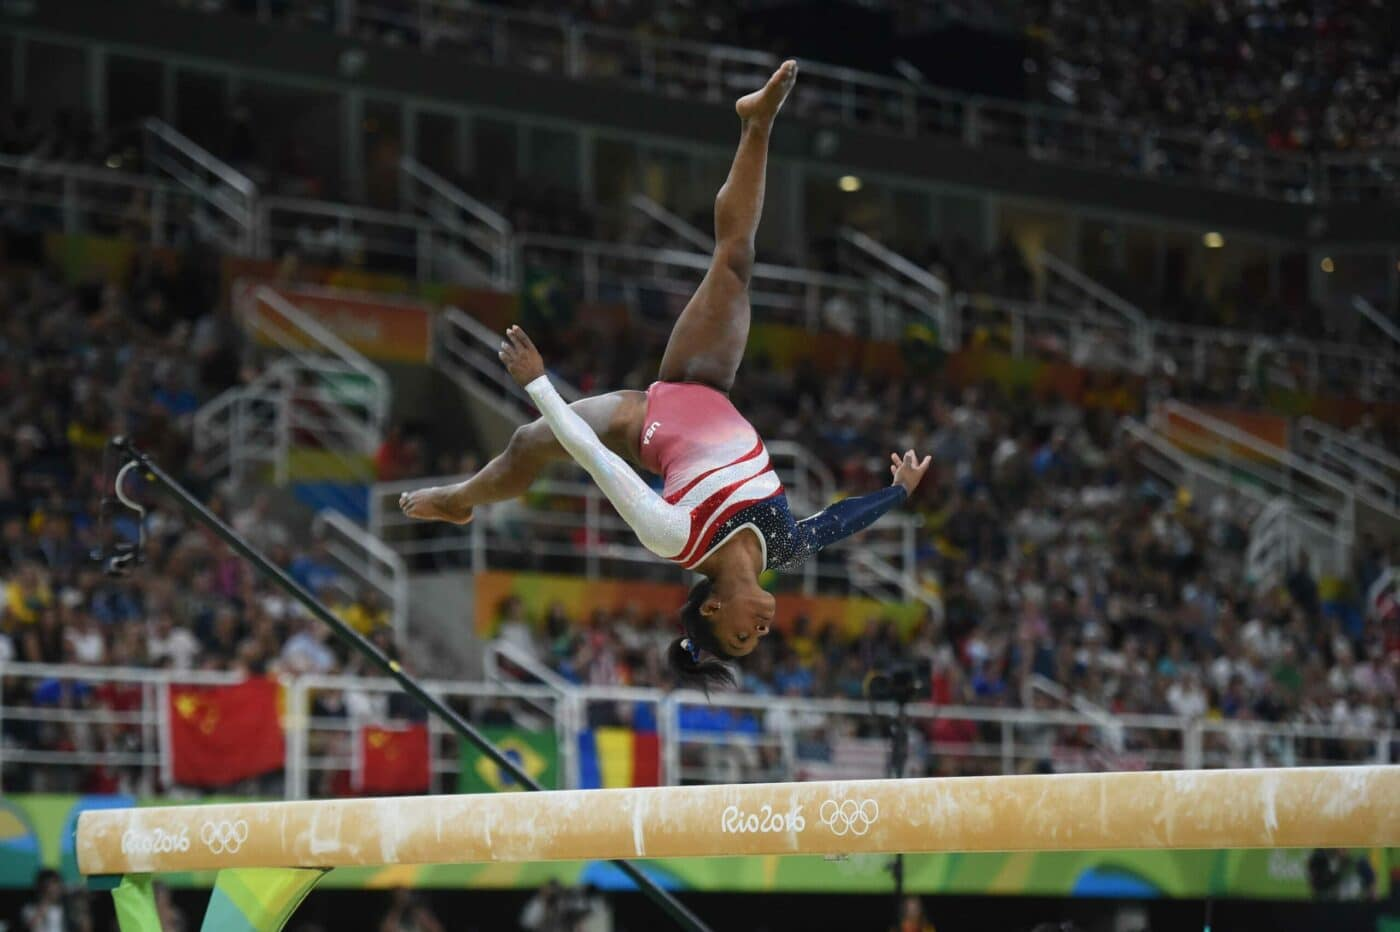 Simone Biles The Greatest Gymnast Of All Time